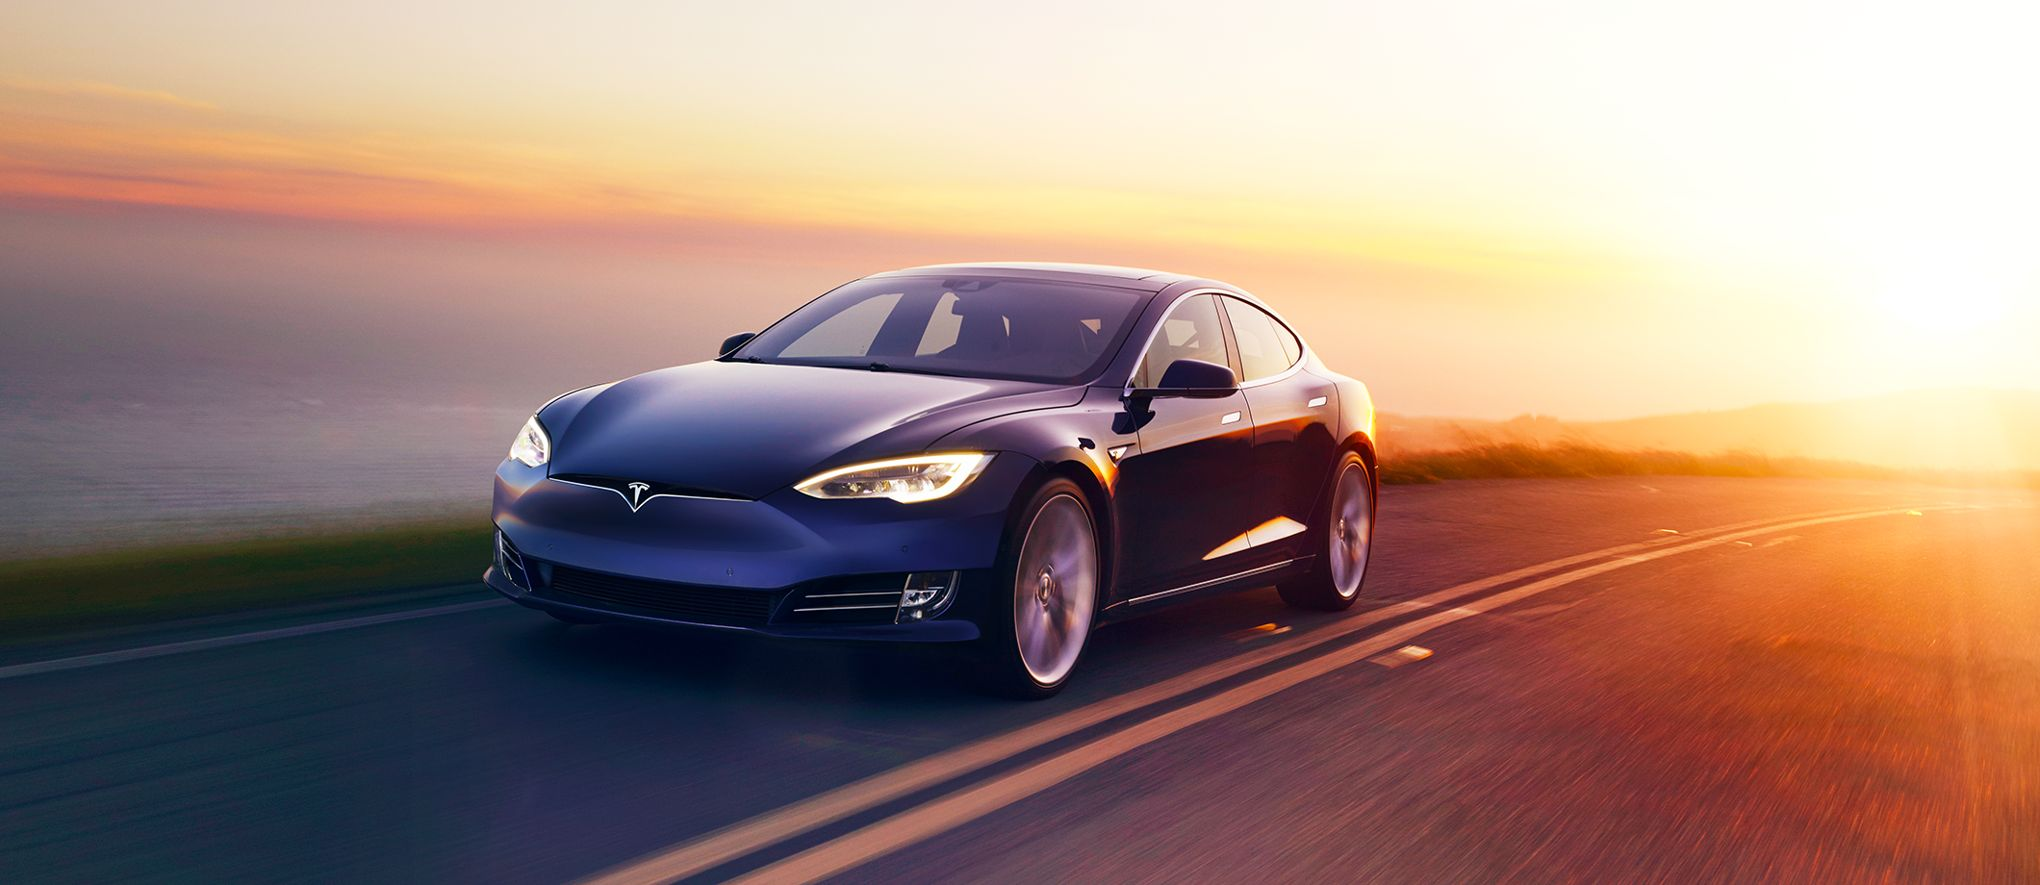 tesla model s plus de 600 km d 39 autonomie. Black Bedroom Furniture Sets. Home Design Ideas